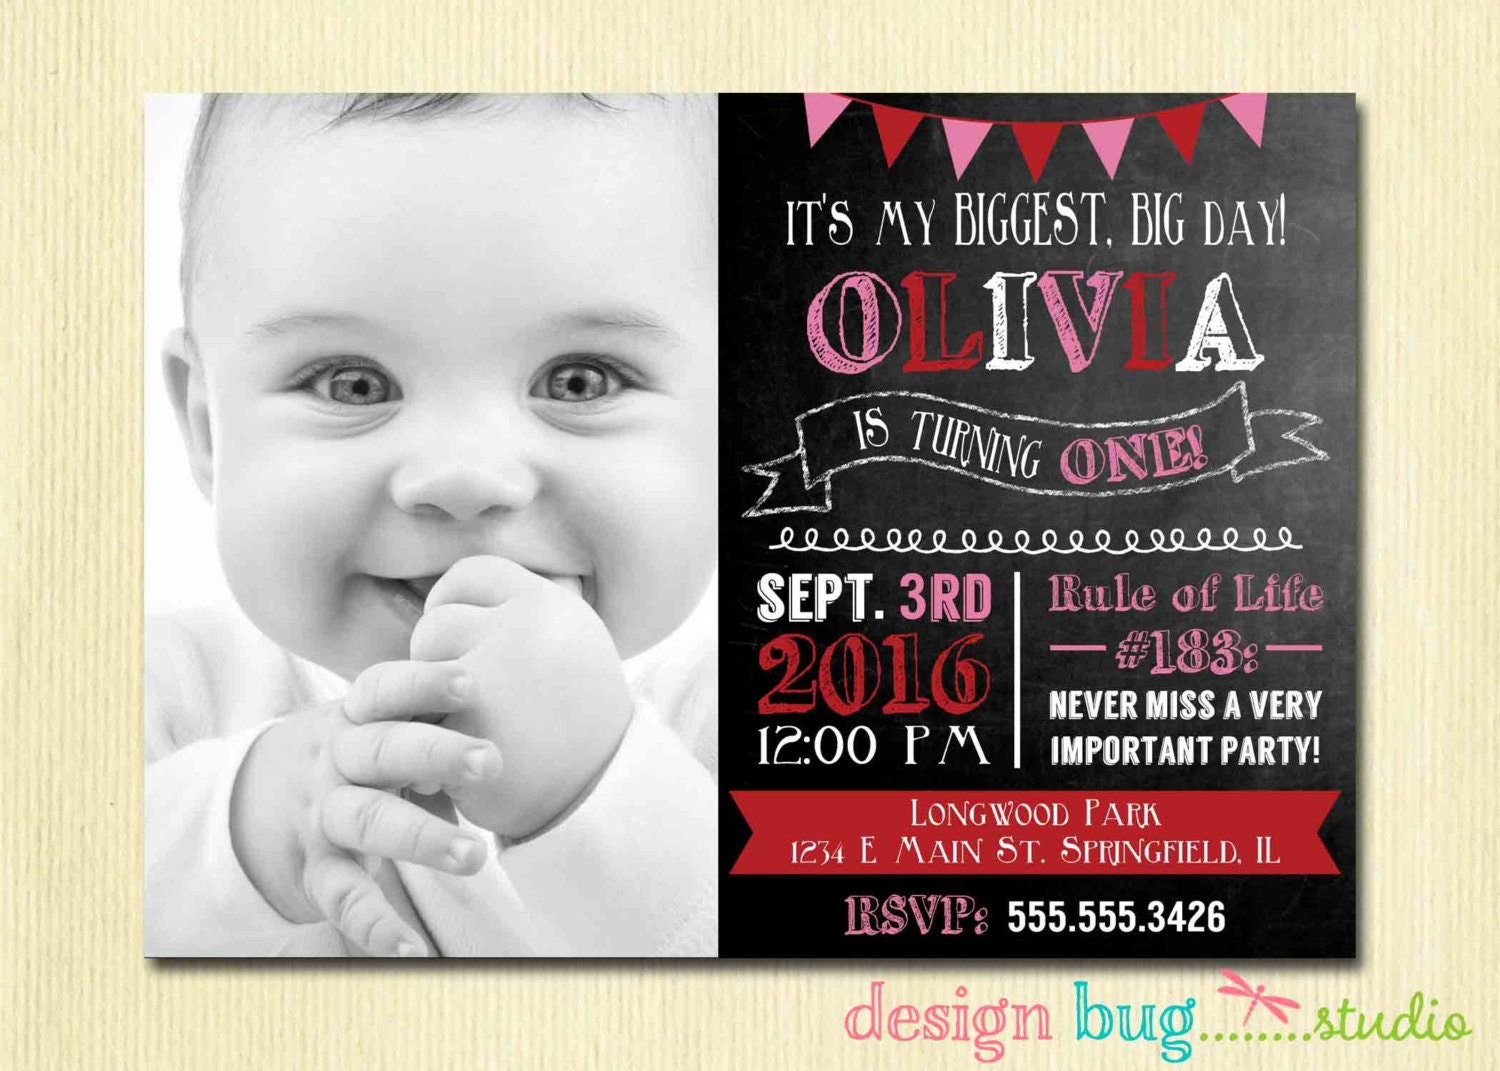 Olivia The Pig Inspired Chalkboard Birthday Invitation Red - Birthday invitation templates for 1 year old